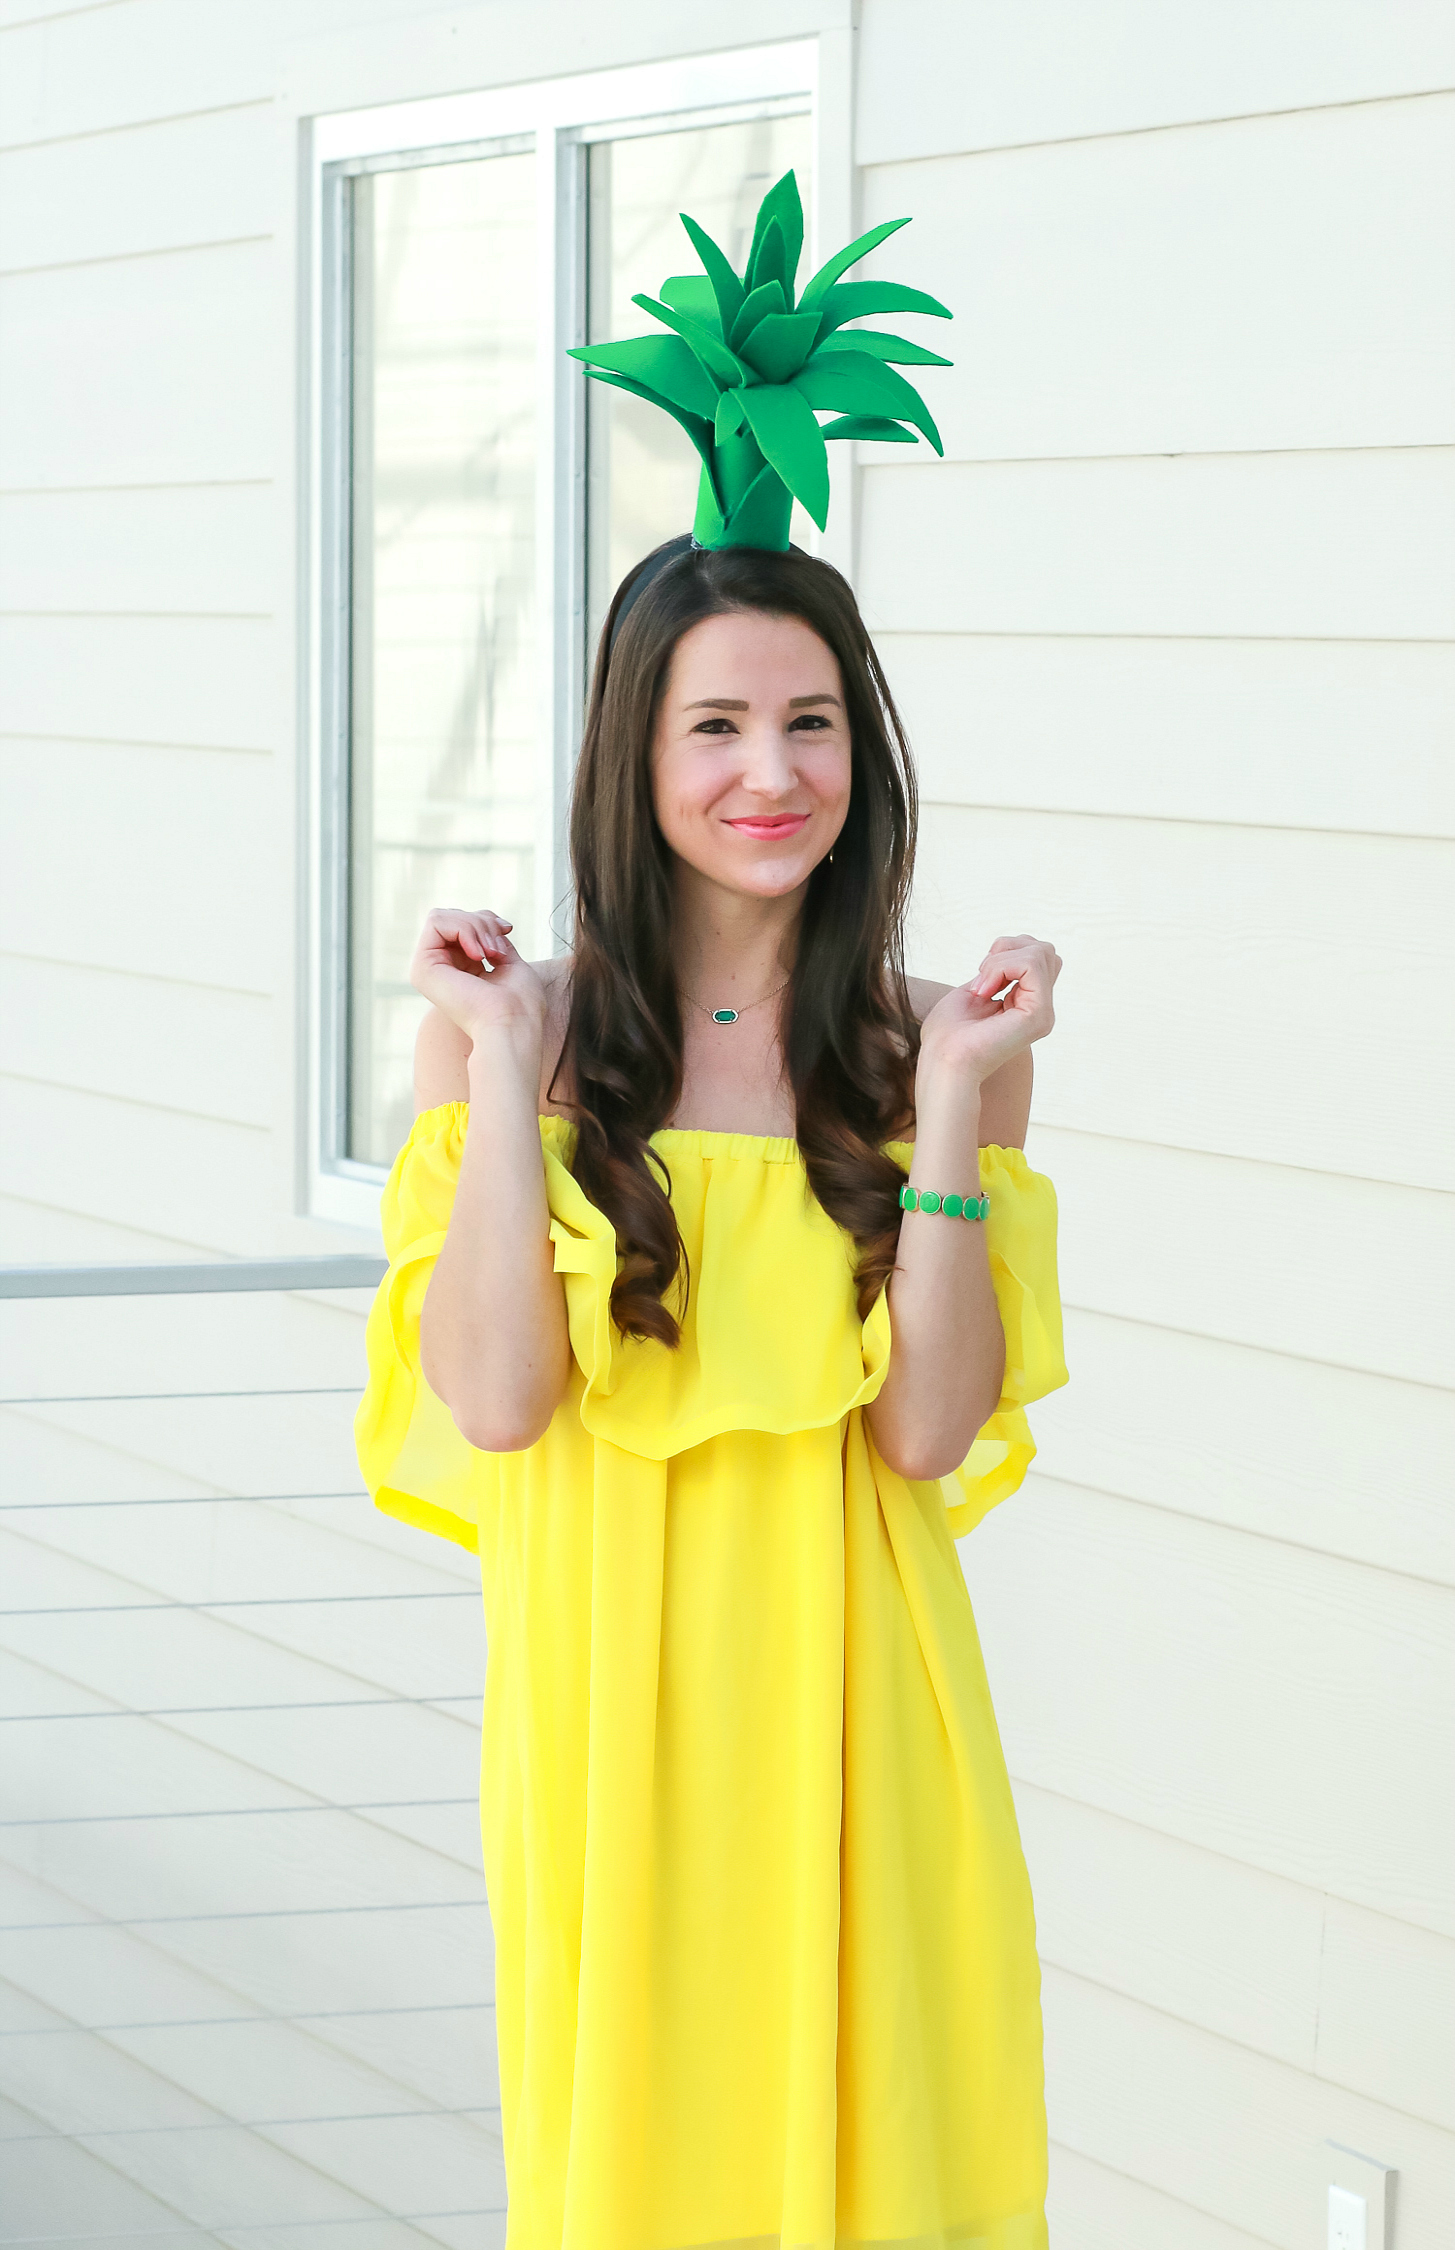 3 Easy Diy Storage Ideas For Small Kitchen: DIY Pineapple Costume That Costs Less Than $3 To Make